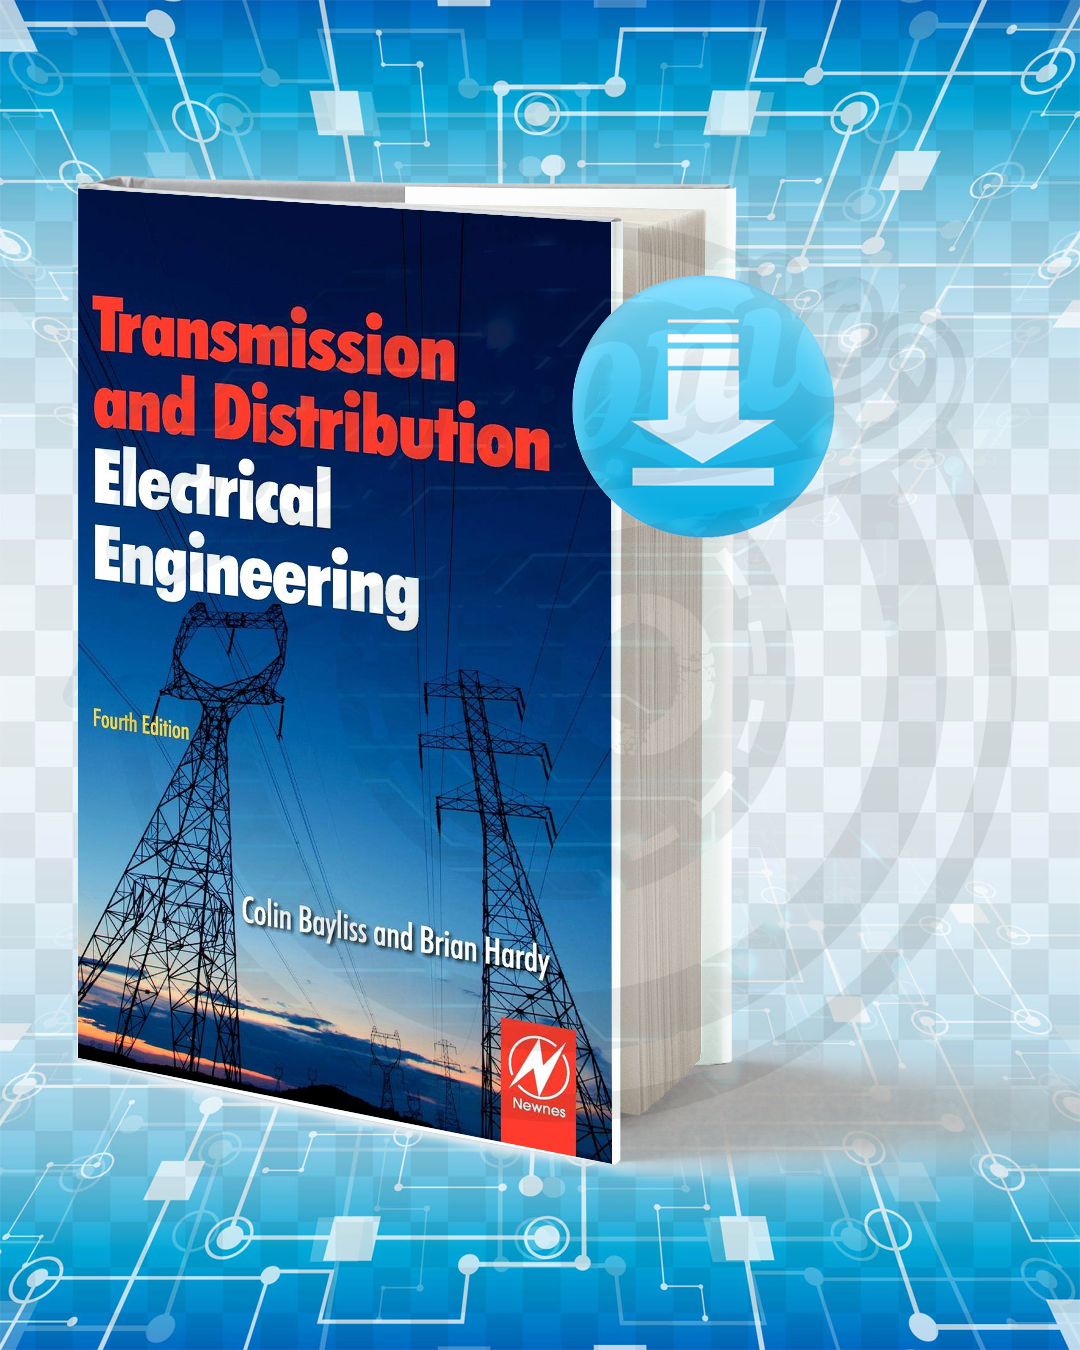 Free Book Transmission and Distribution Electrical Engineering pdf.